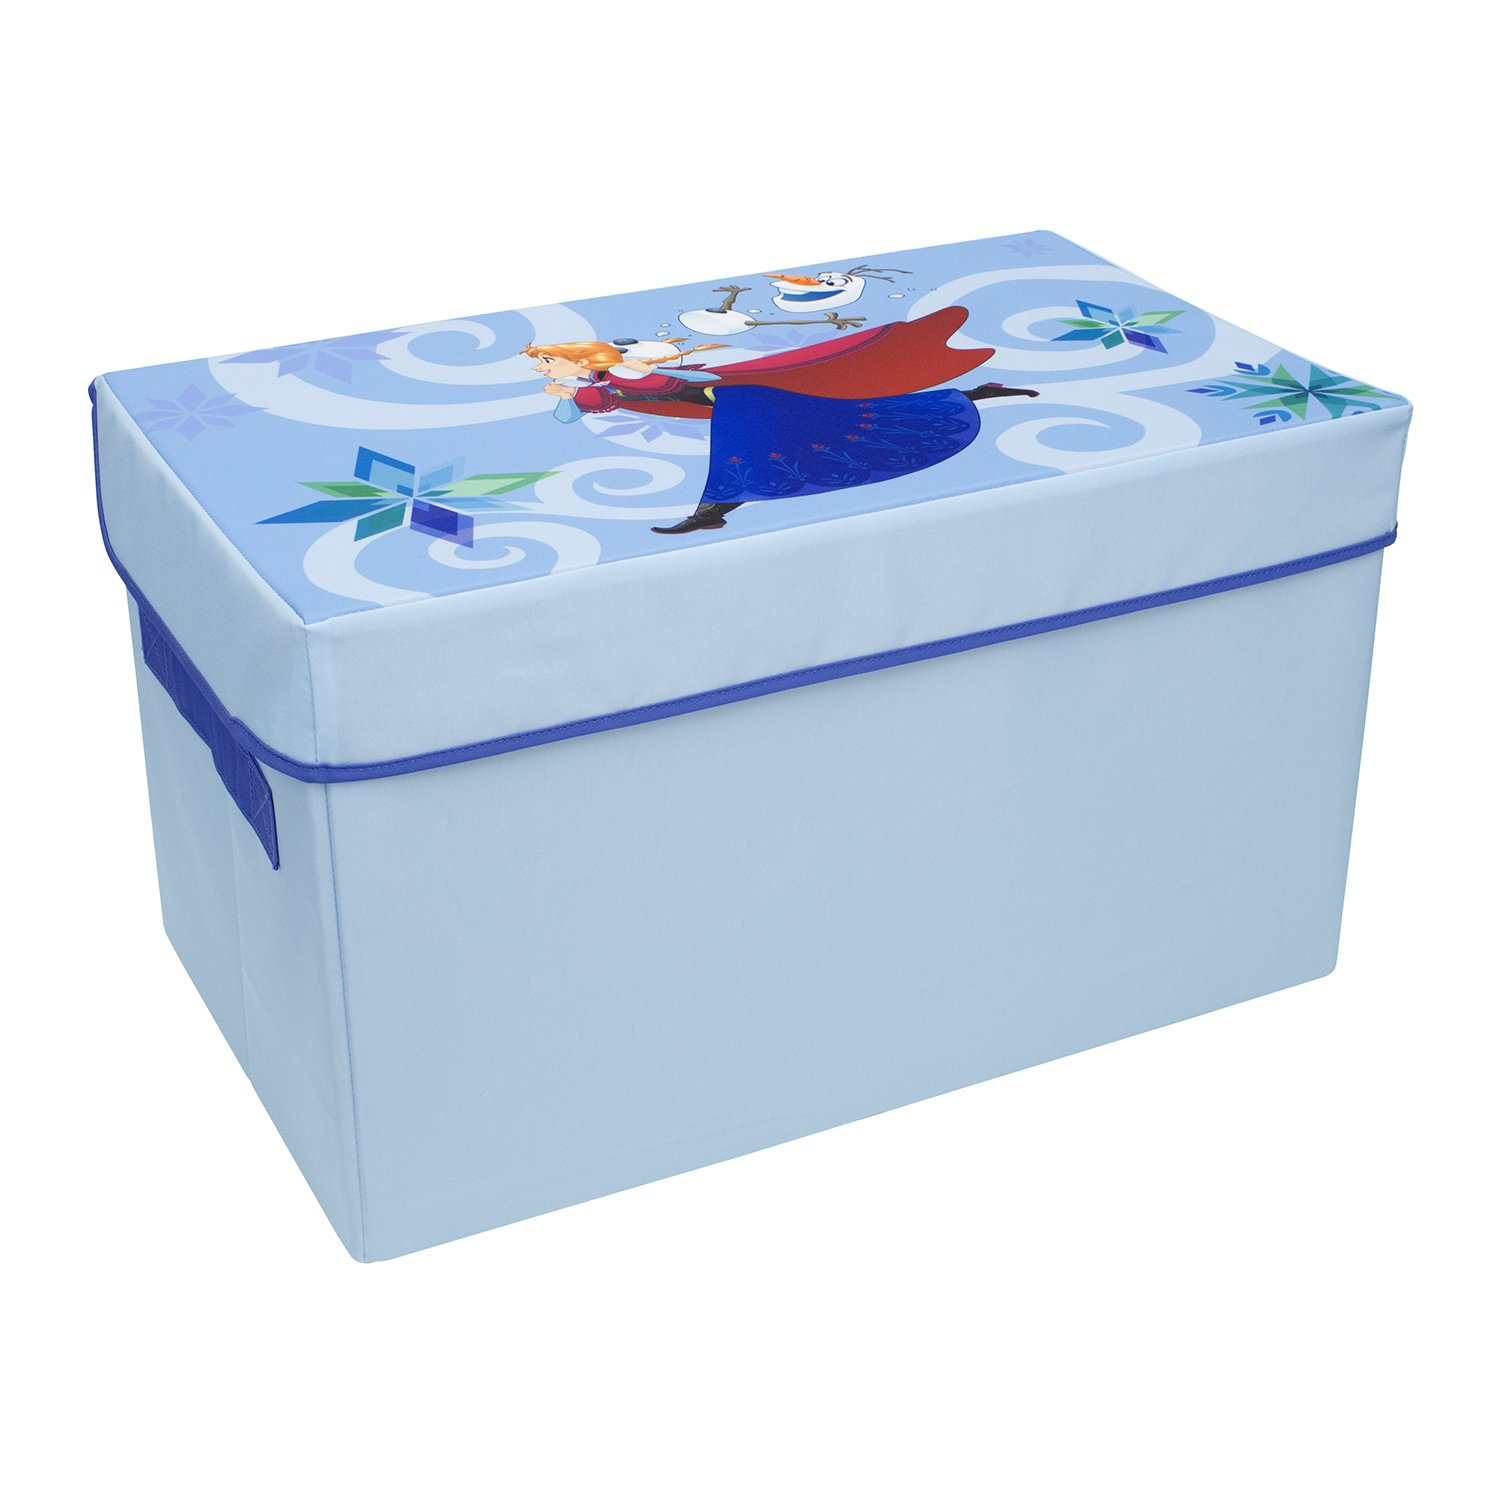 Frozen Collapsible KidsToy Storage Chest by Disney - Flip-Top Toy Organizer Bin for Closets, Kids Bedroom, Boys & Girls Toys - Foldable Toy Basket Organizer with Strong Handles & Design by Everything Mary